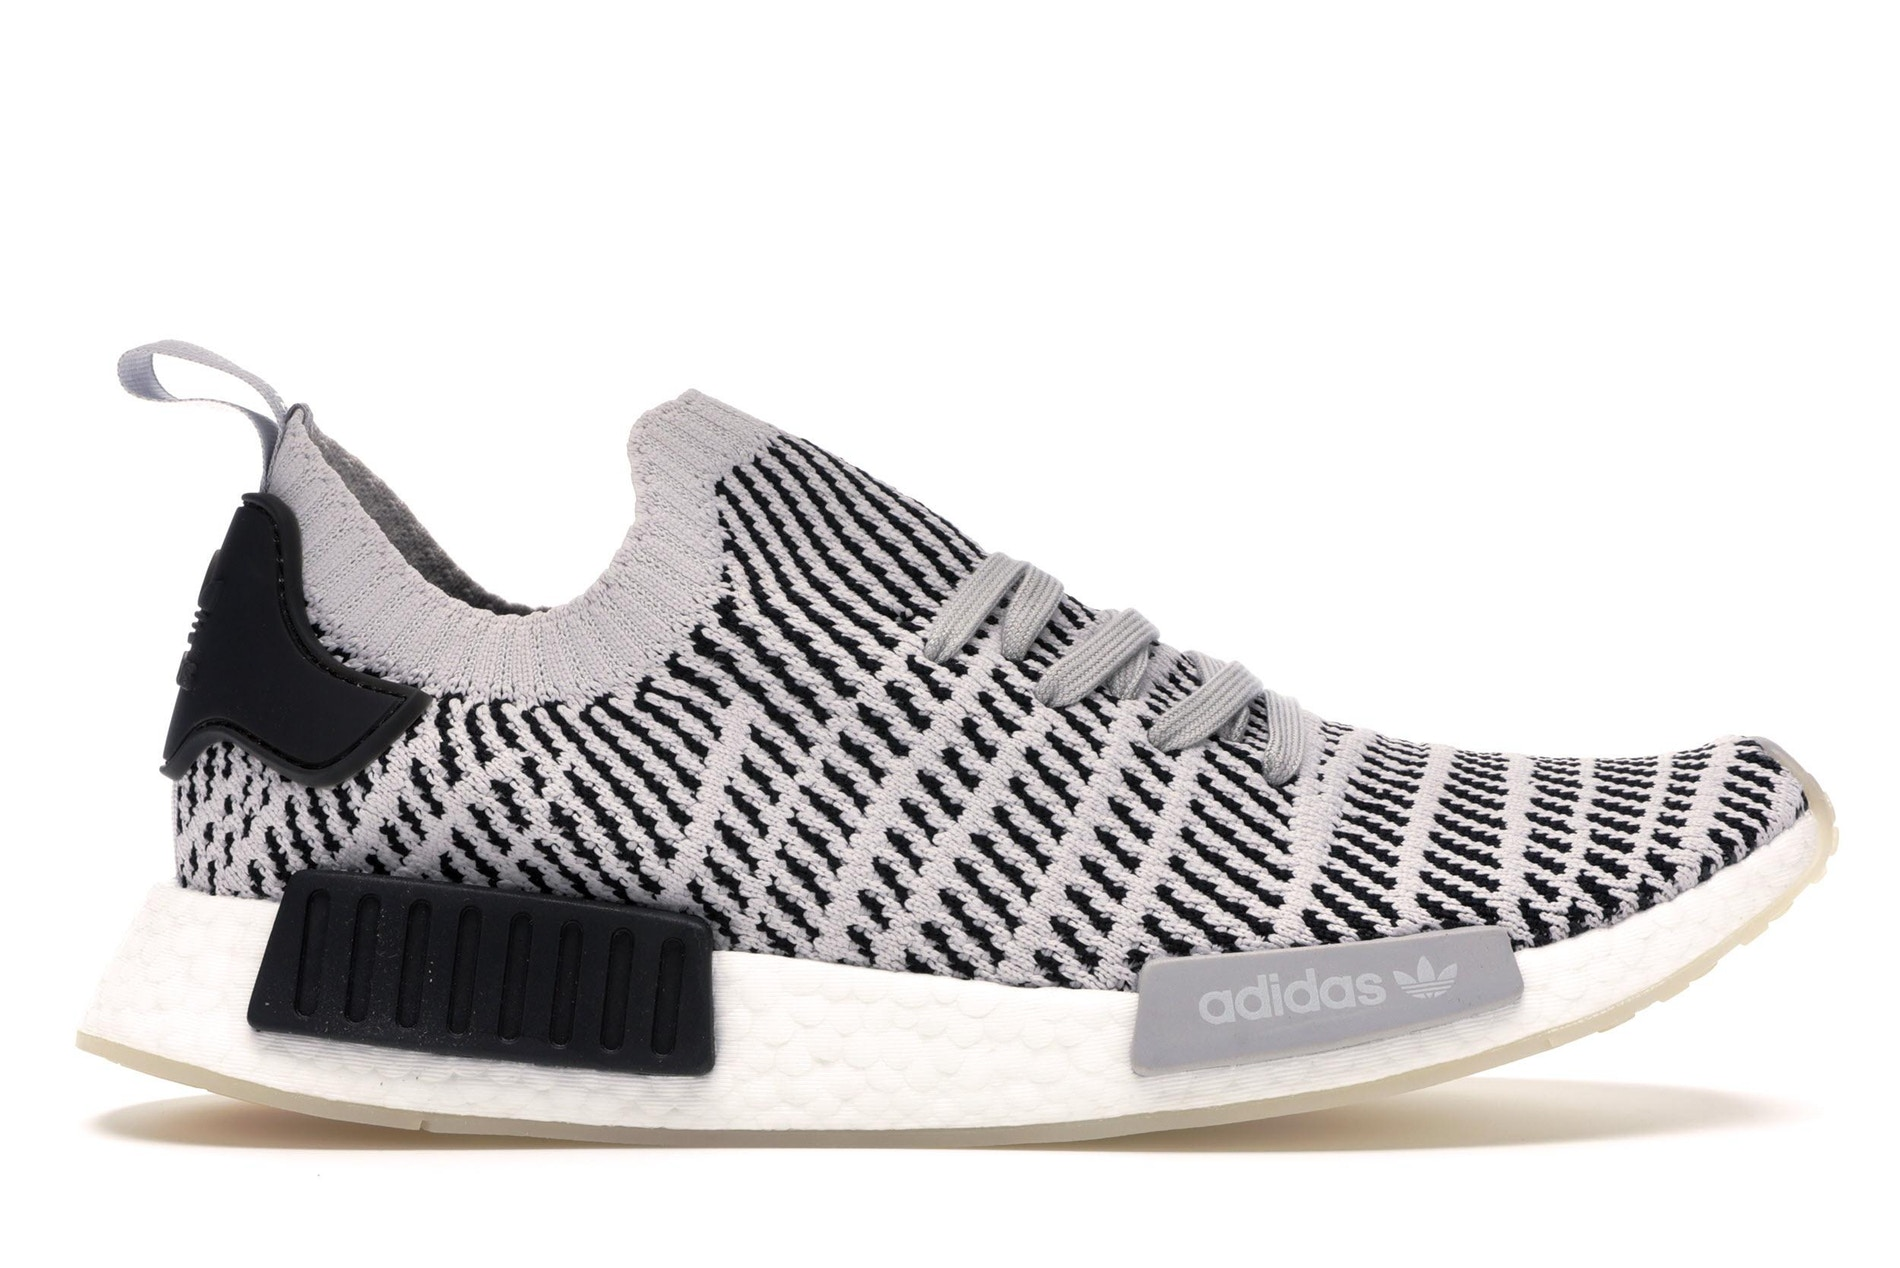 adidas NMD Size 14 Shoes Volatility